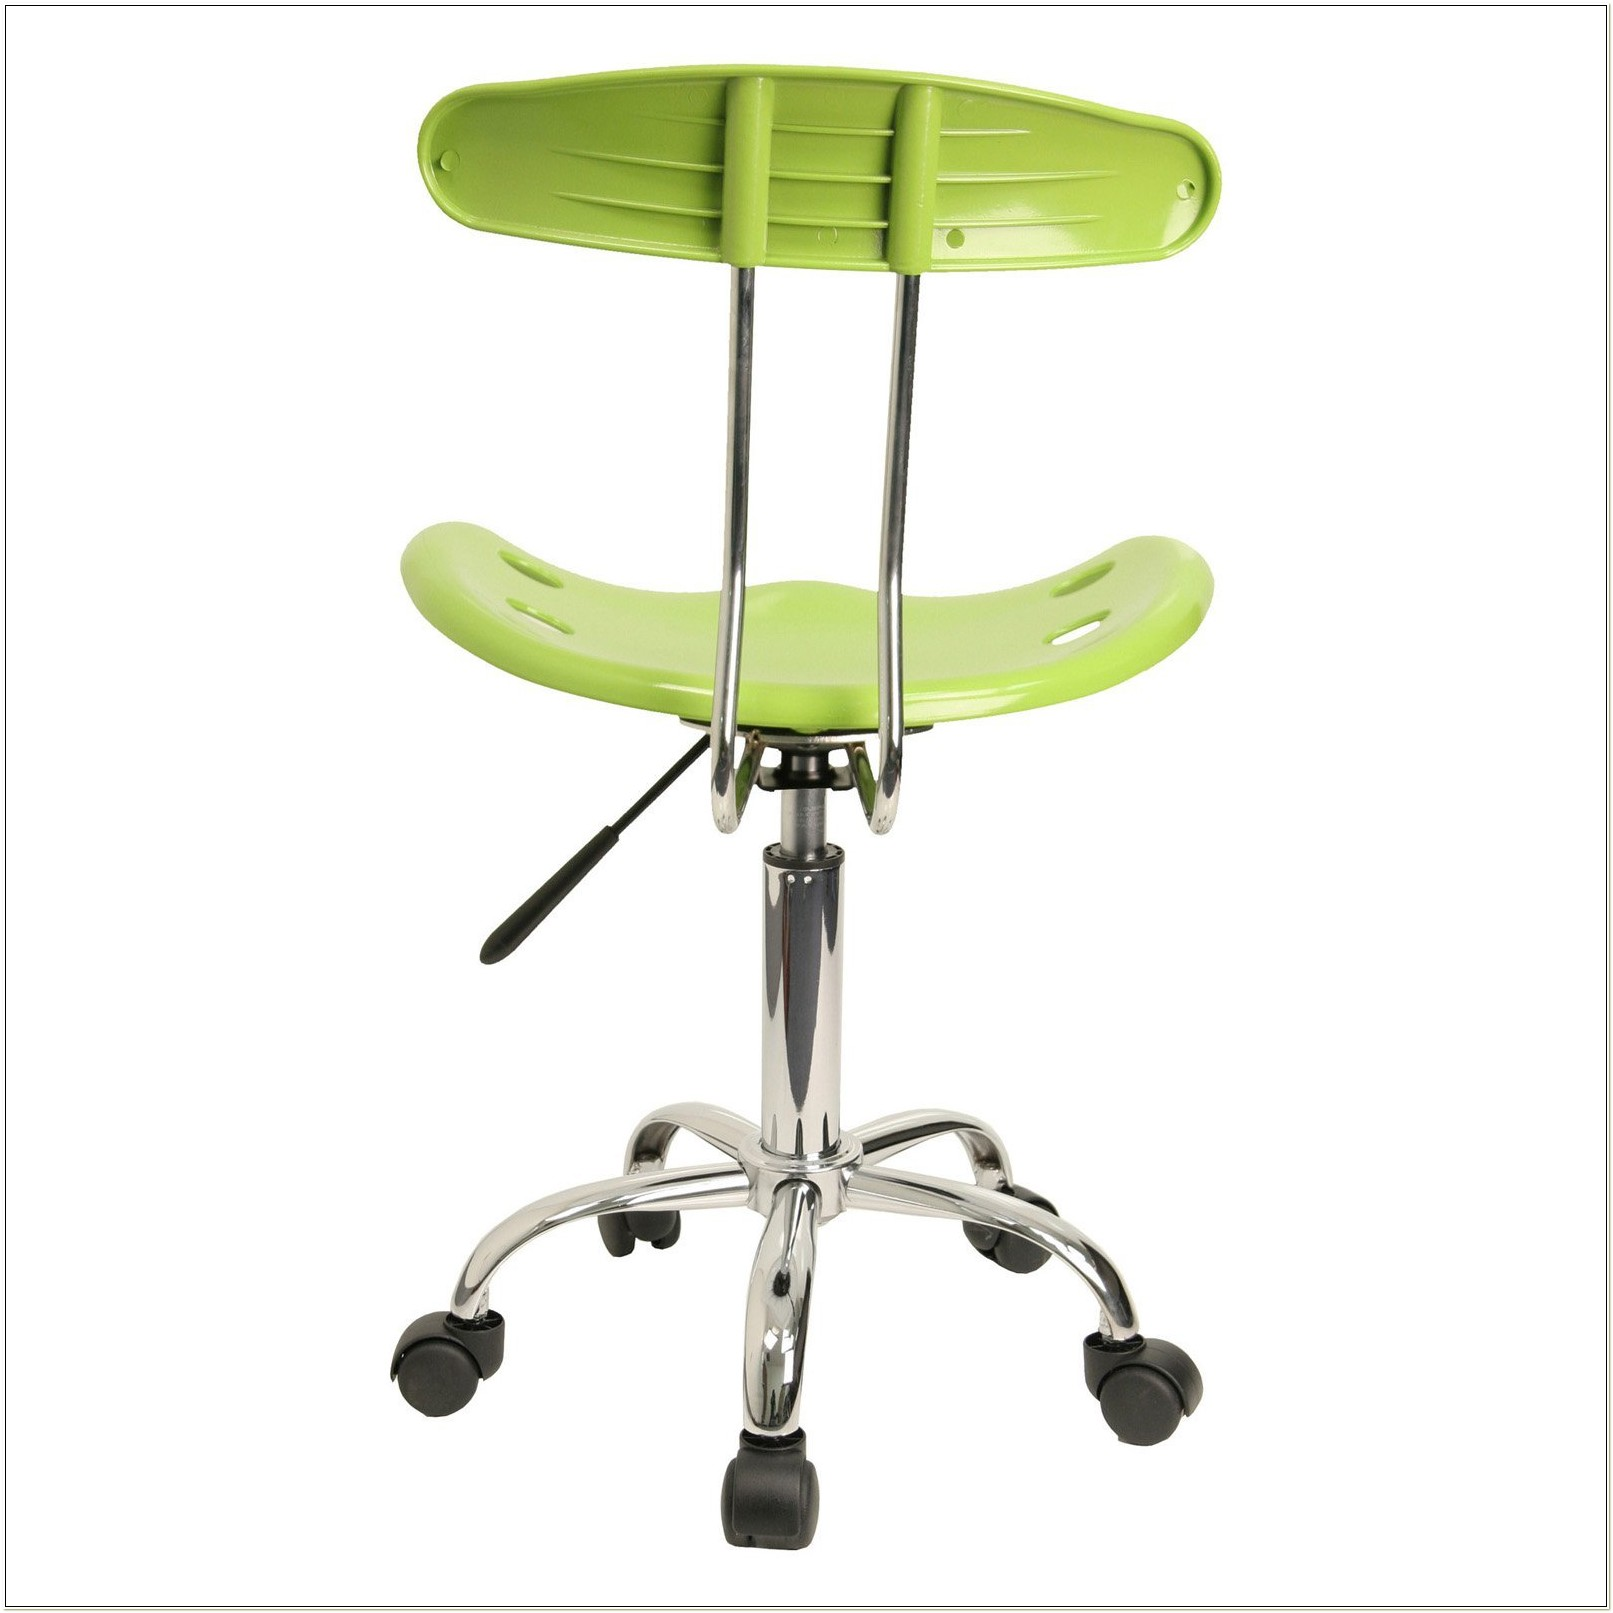 Tractor Seat Desk Chair